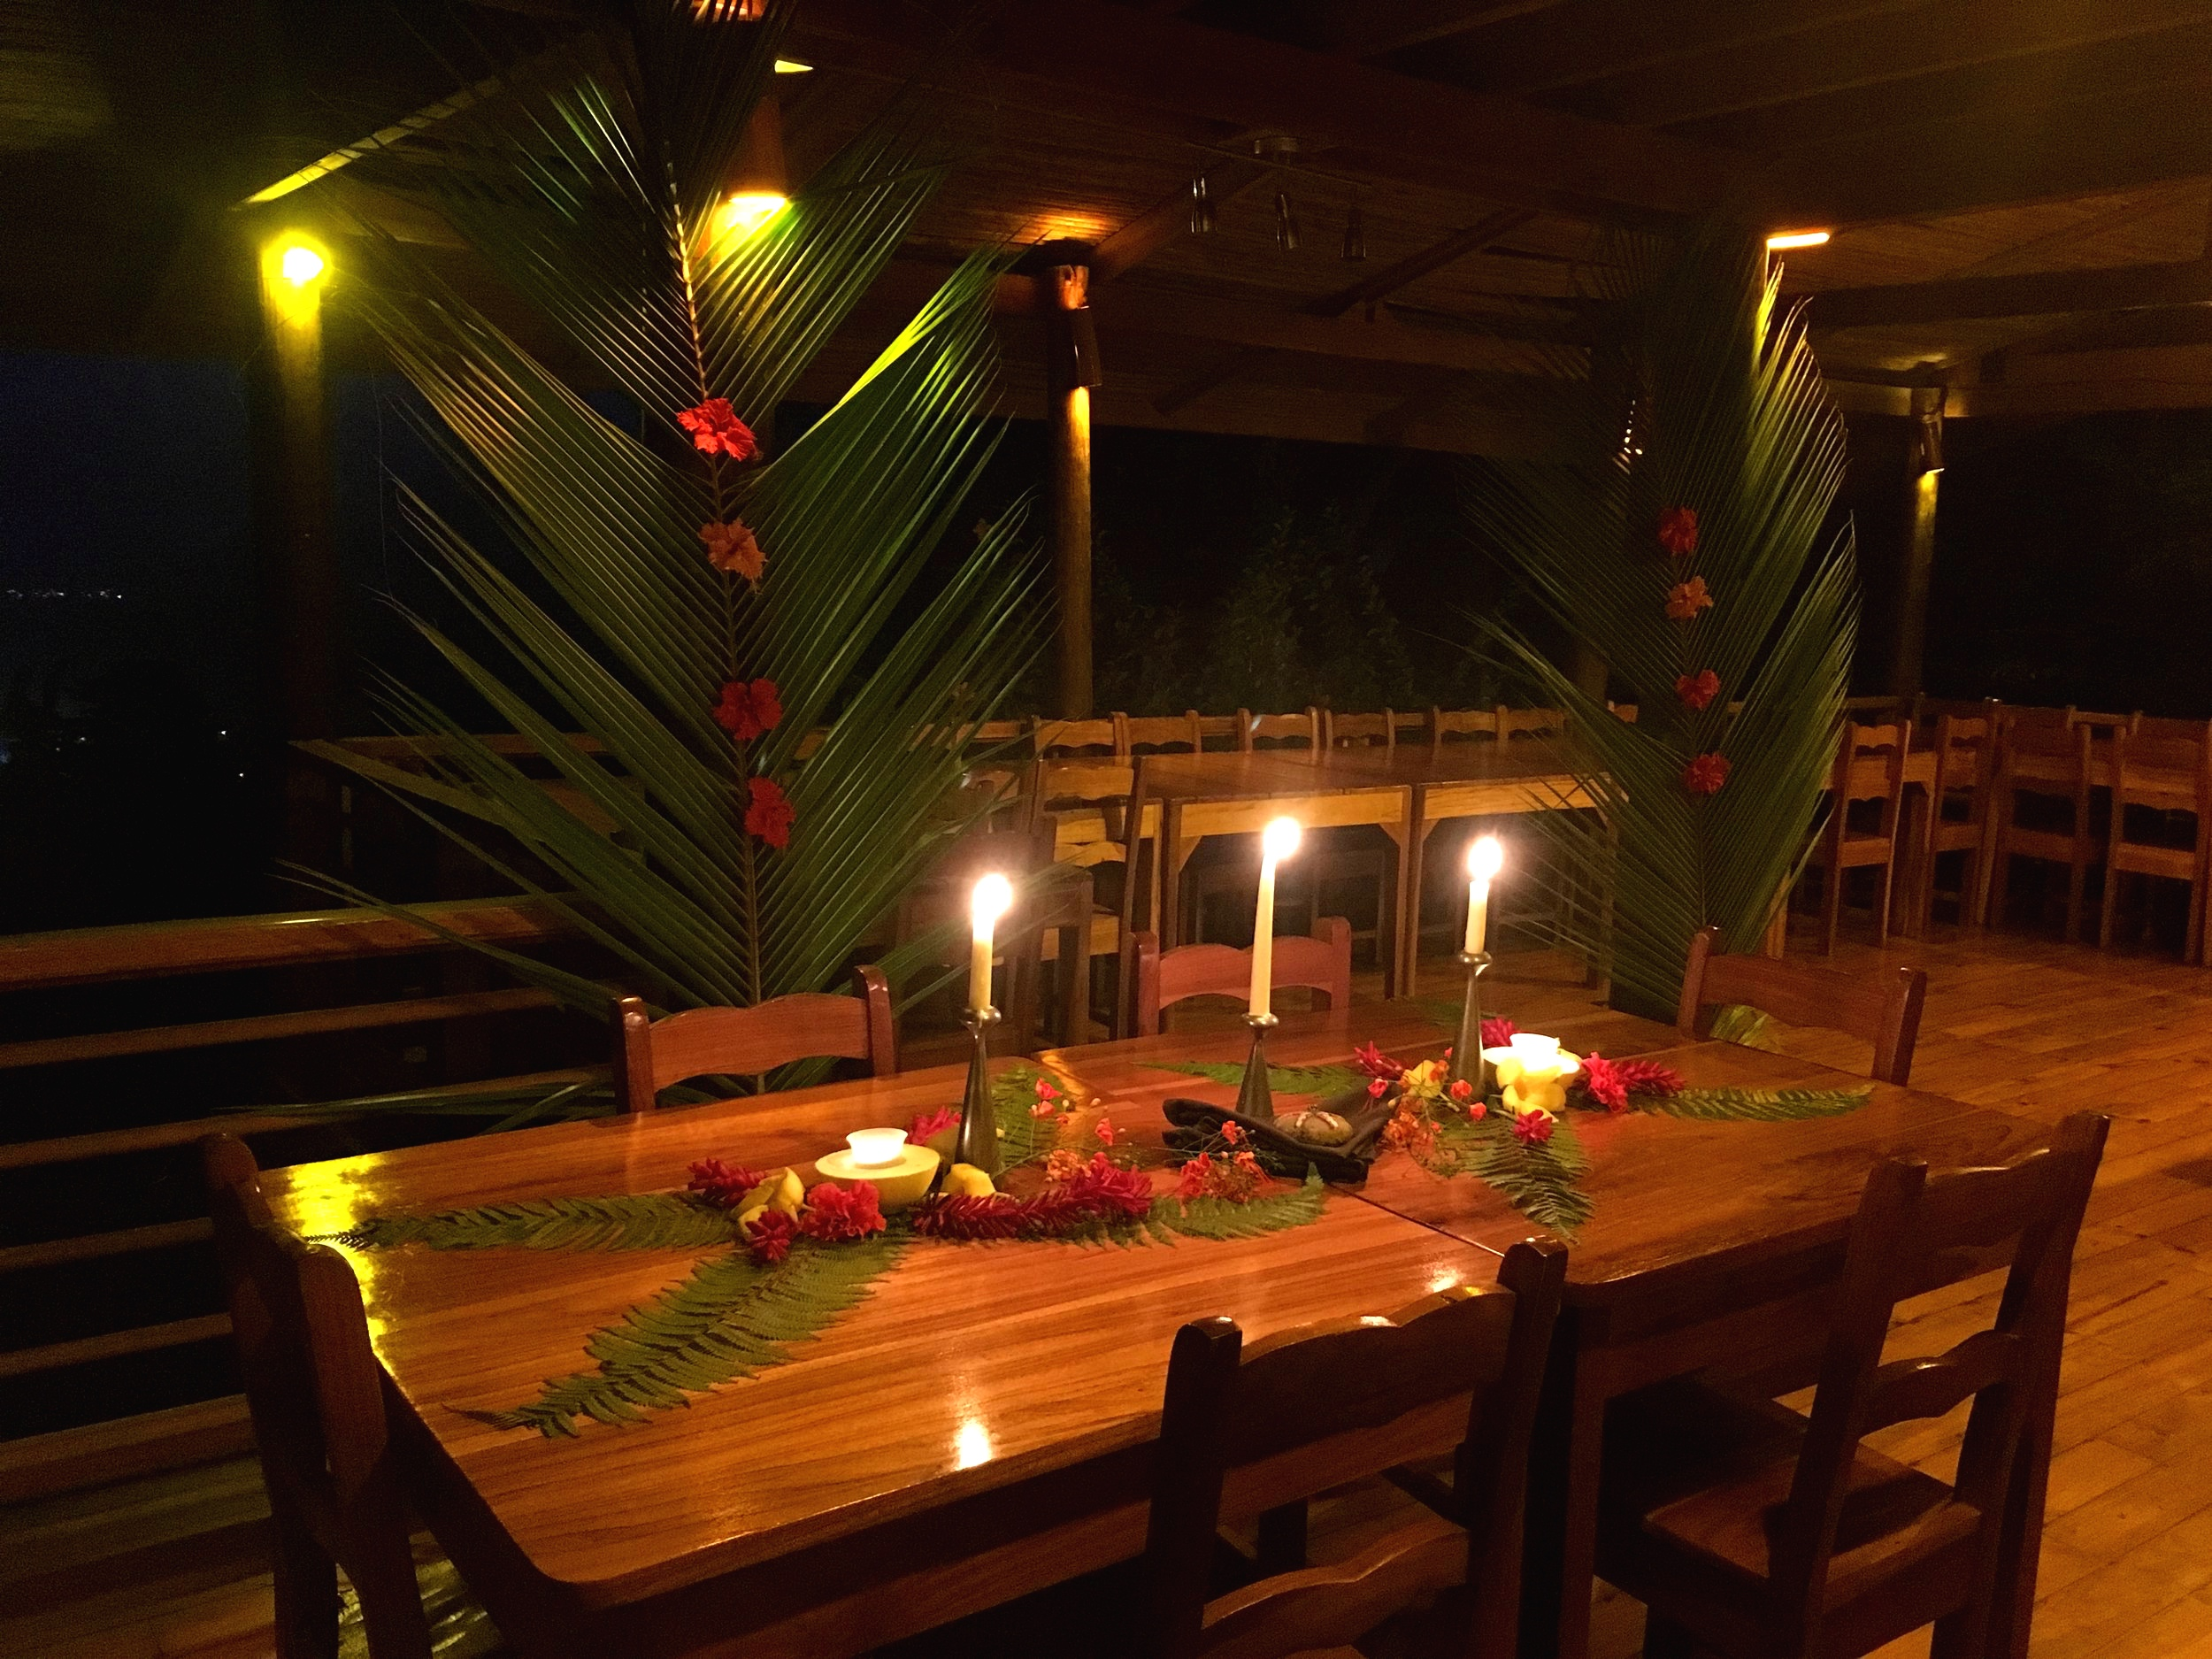 DINNER IN COSTA RICA in the OPEN AIR DINING area